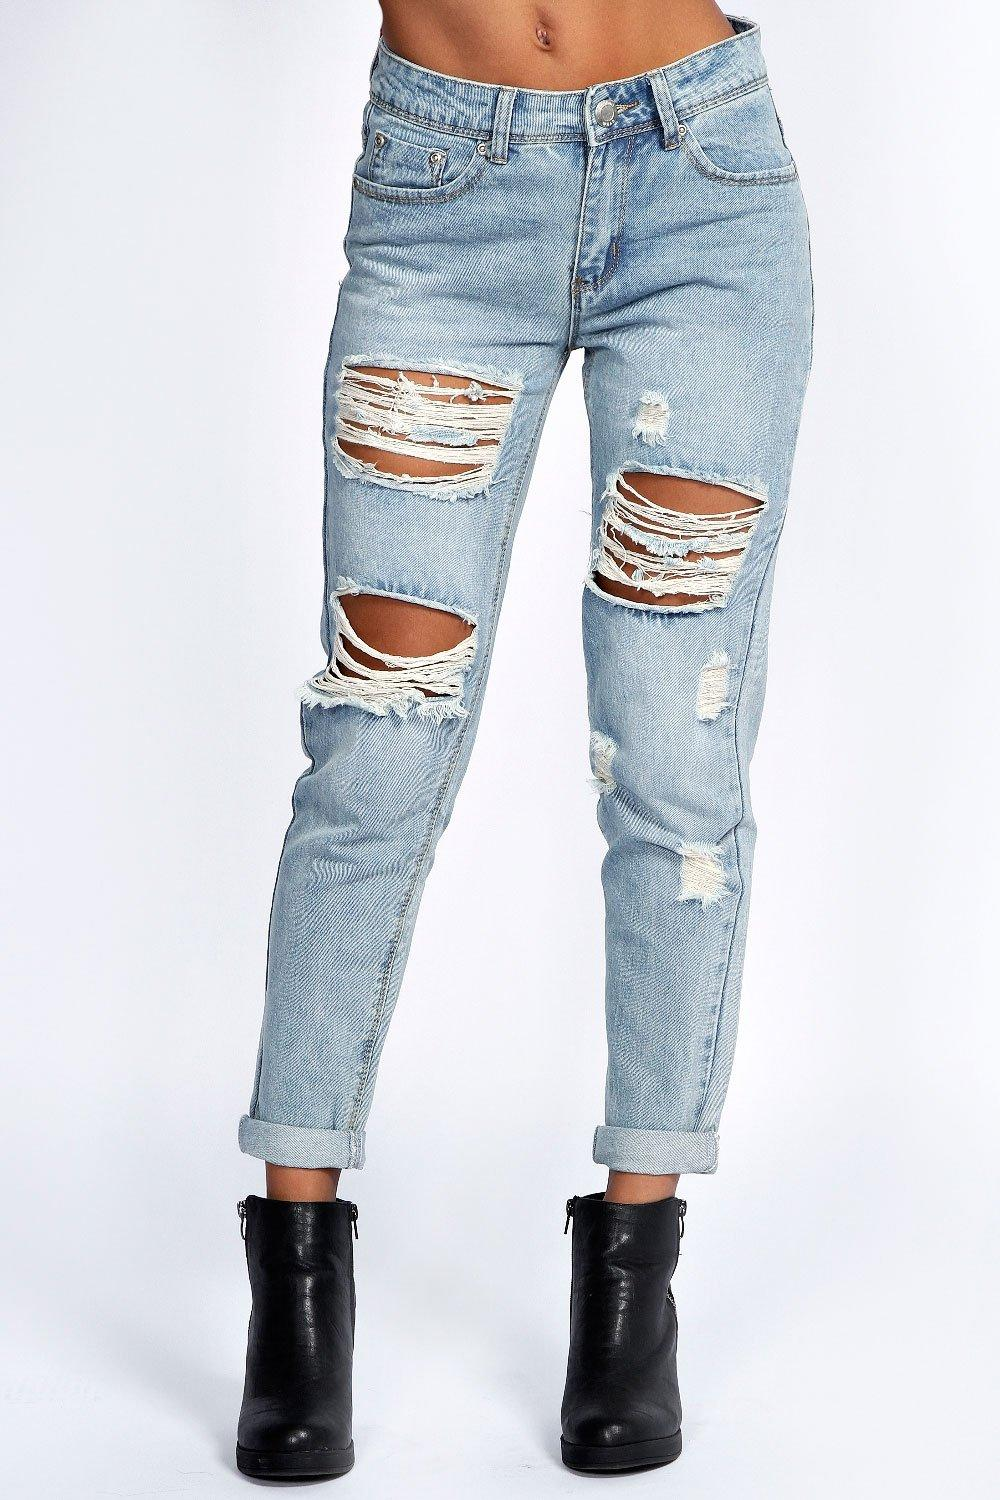 ripped jeans for women hover to zoom hgrdjoq